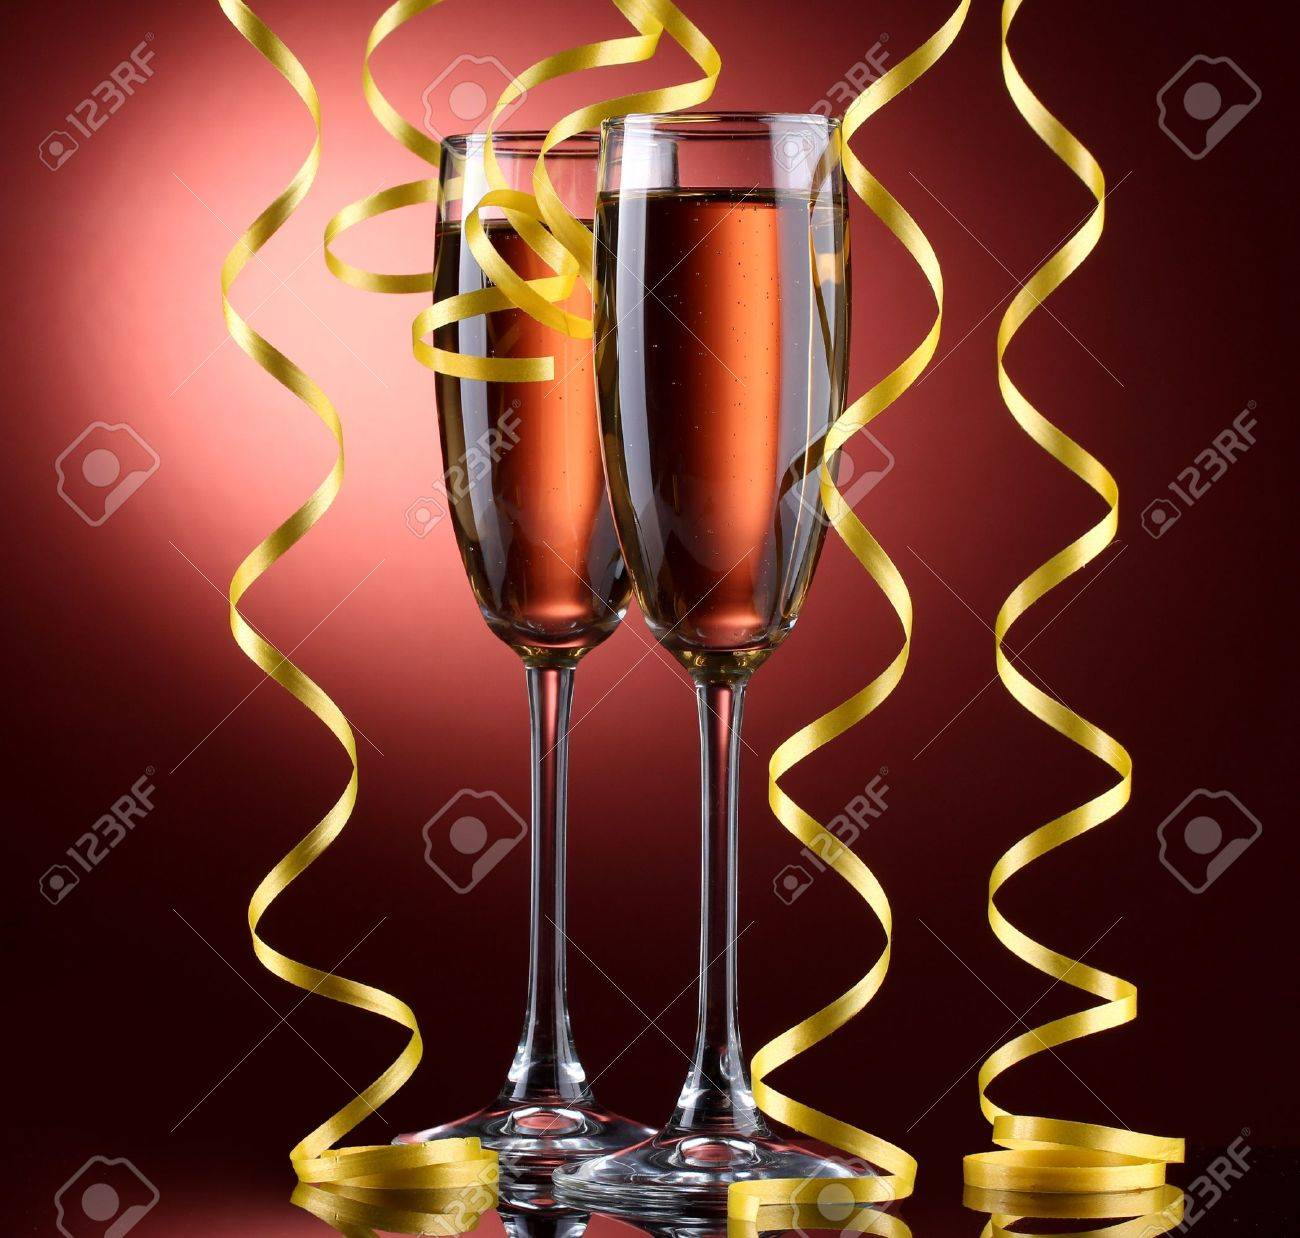 glasses of champagne and streamer on red background Stock Photo - 13355963